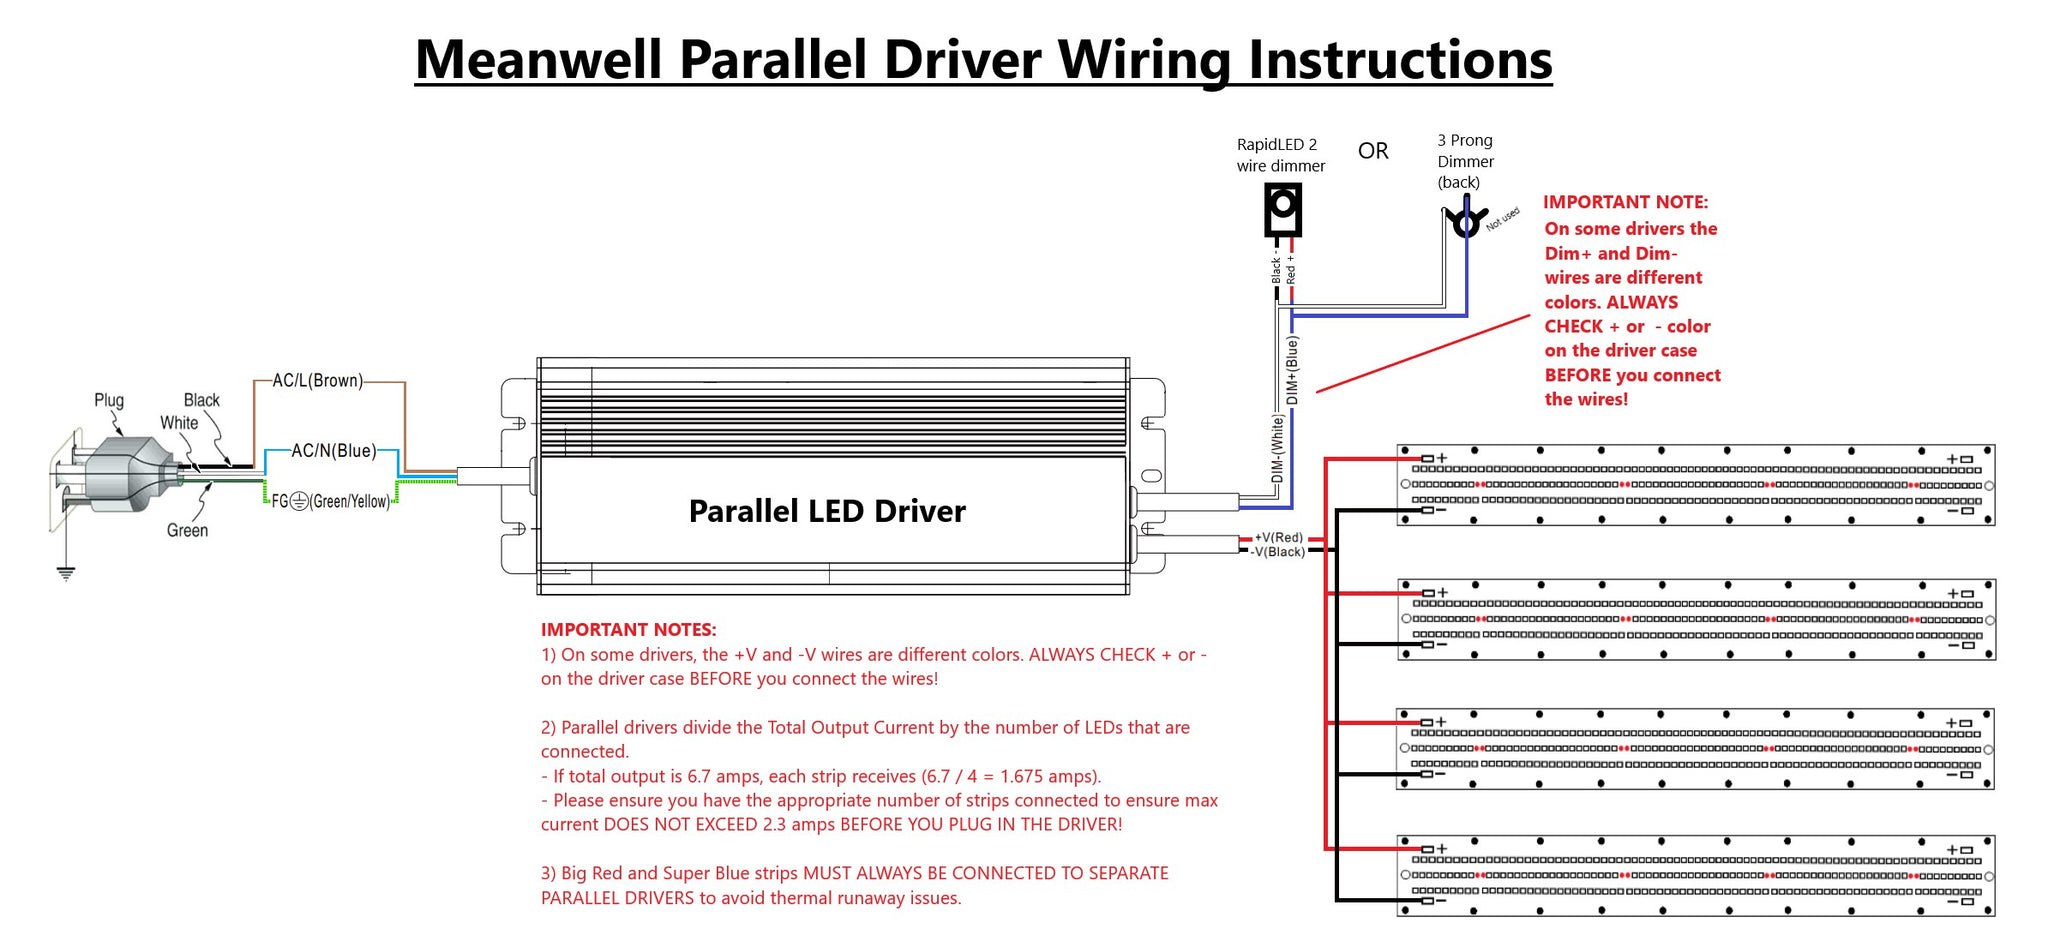 Parallel Wiring Instructions for LED Driver